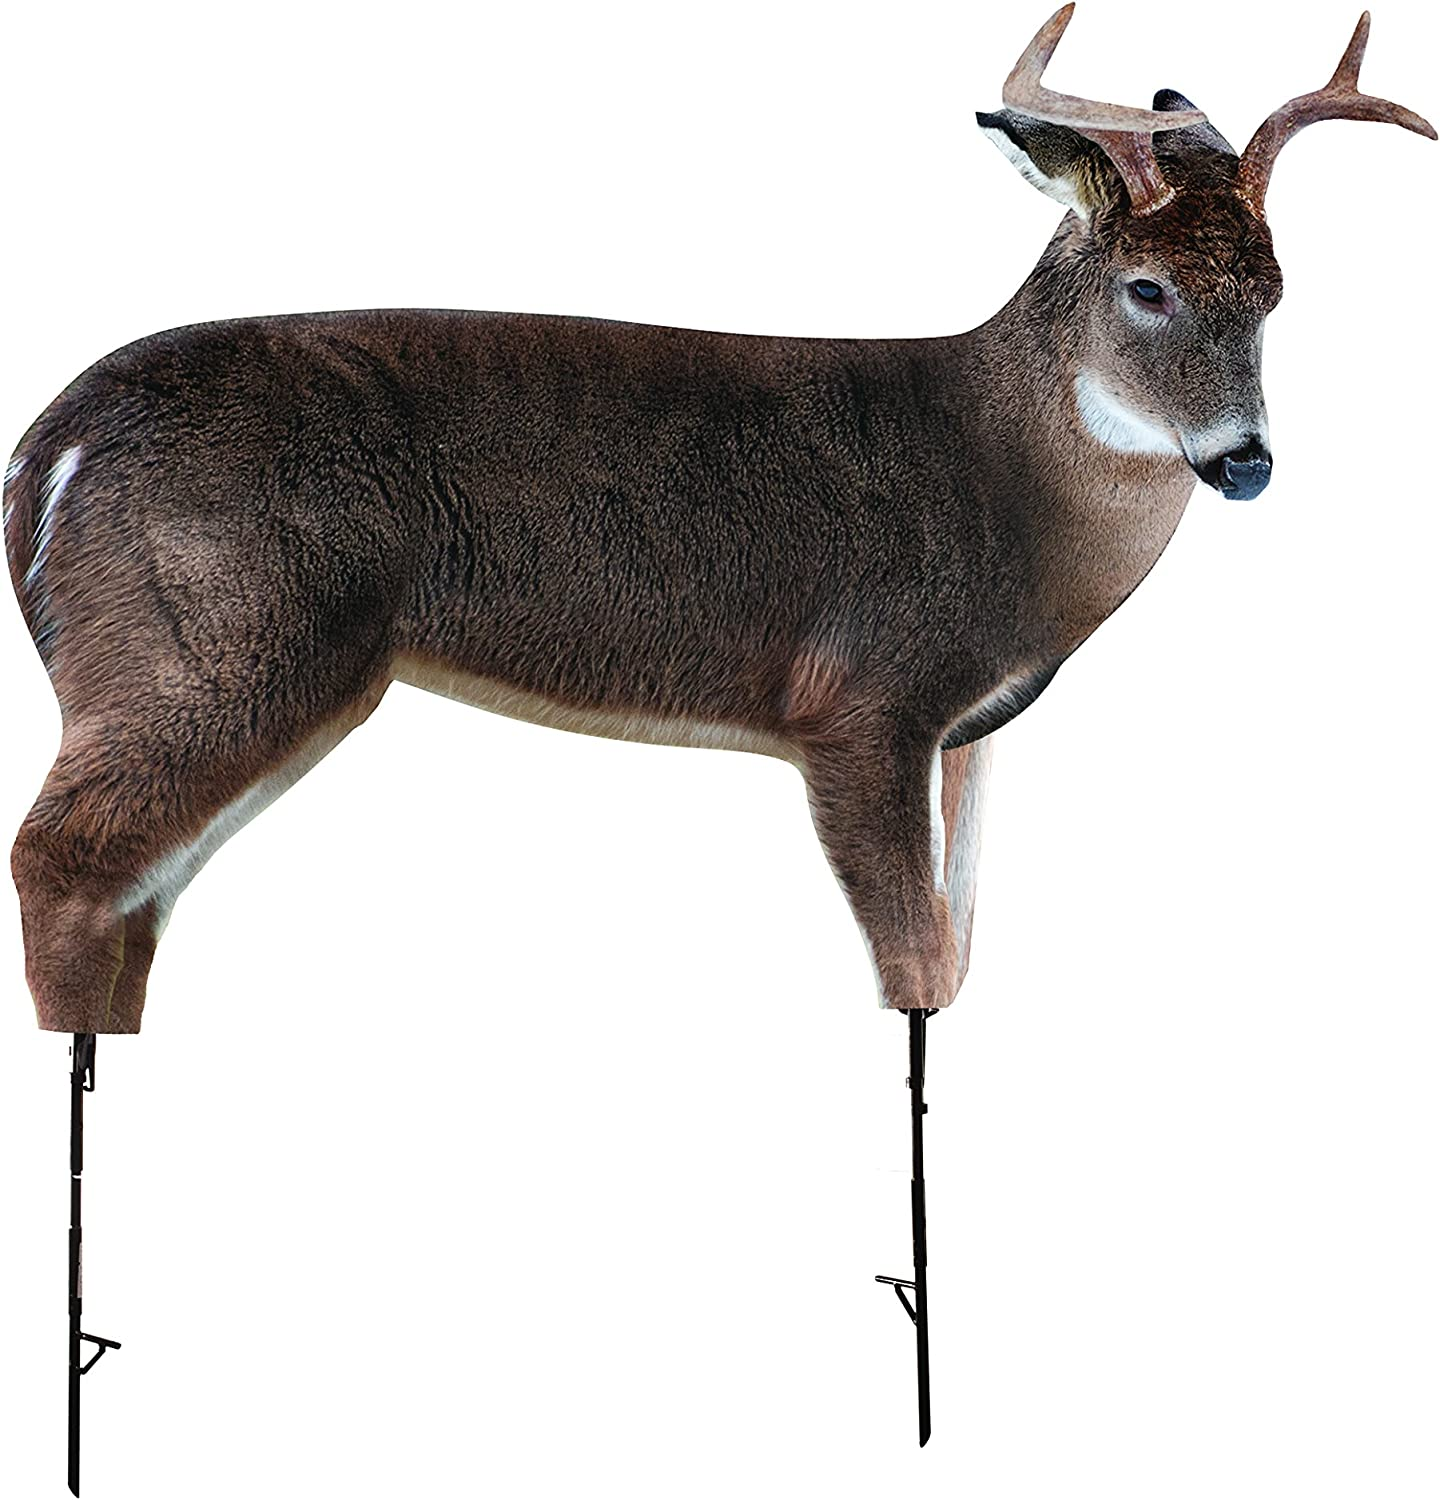 The Freshman (Whitetail Buck) by Montana Decoy